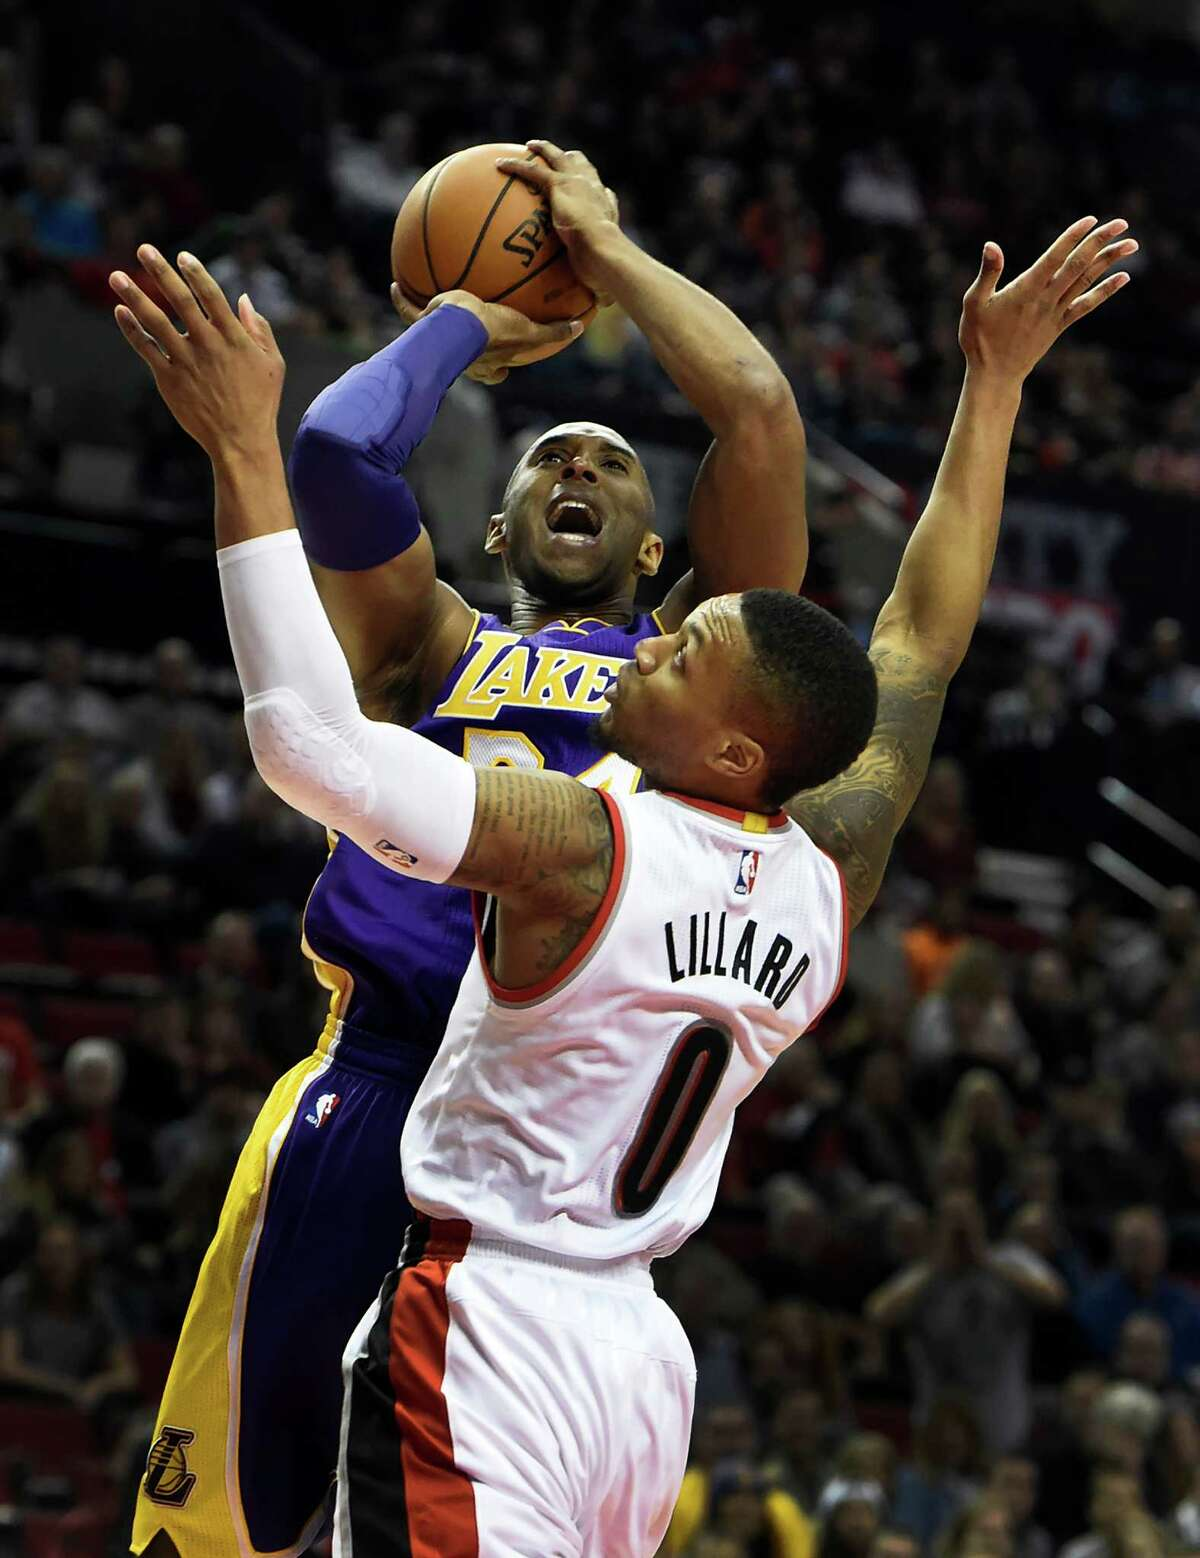 Los Angeles Lakers forward Kobe Bryant (24) shoots the ball over Portland Trail Blazers guard Damian Lillard (0) during the first half of an NBA basketball game on Saturday, Nov. 28, 2015, in Portland, Ore. (AP Photo/Steve Dykes)